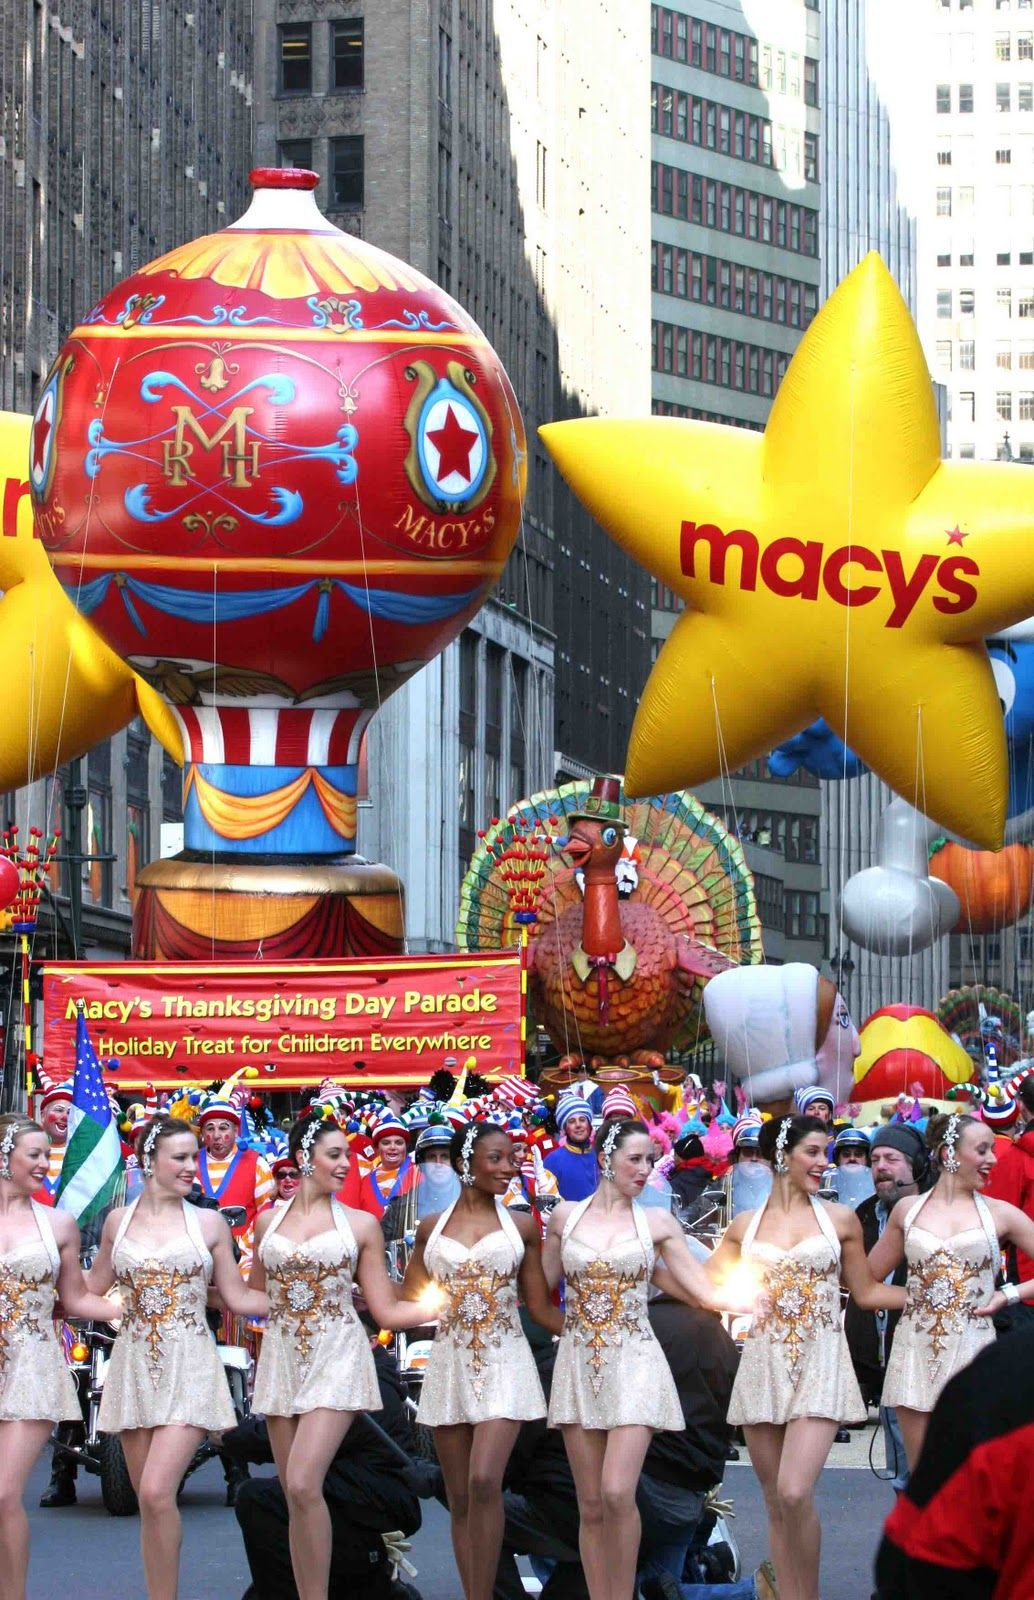 Thanksgiving Macy Day Parade New York City Rockettes Turkey Float Newyor Thanksgiving Day Parade Macy S Thanksgiving Day Parade Macy S Thanksgiving Day Parade